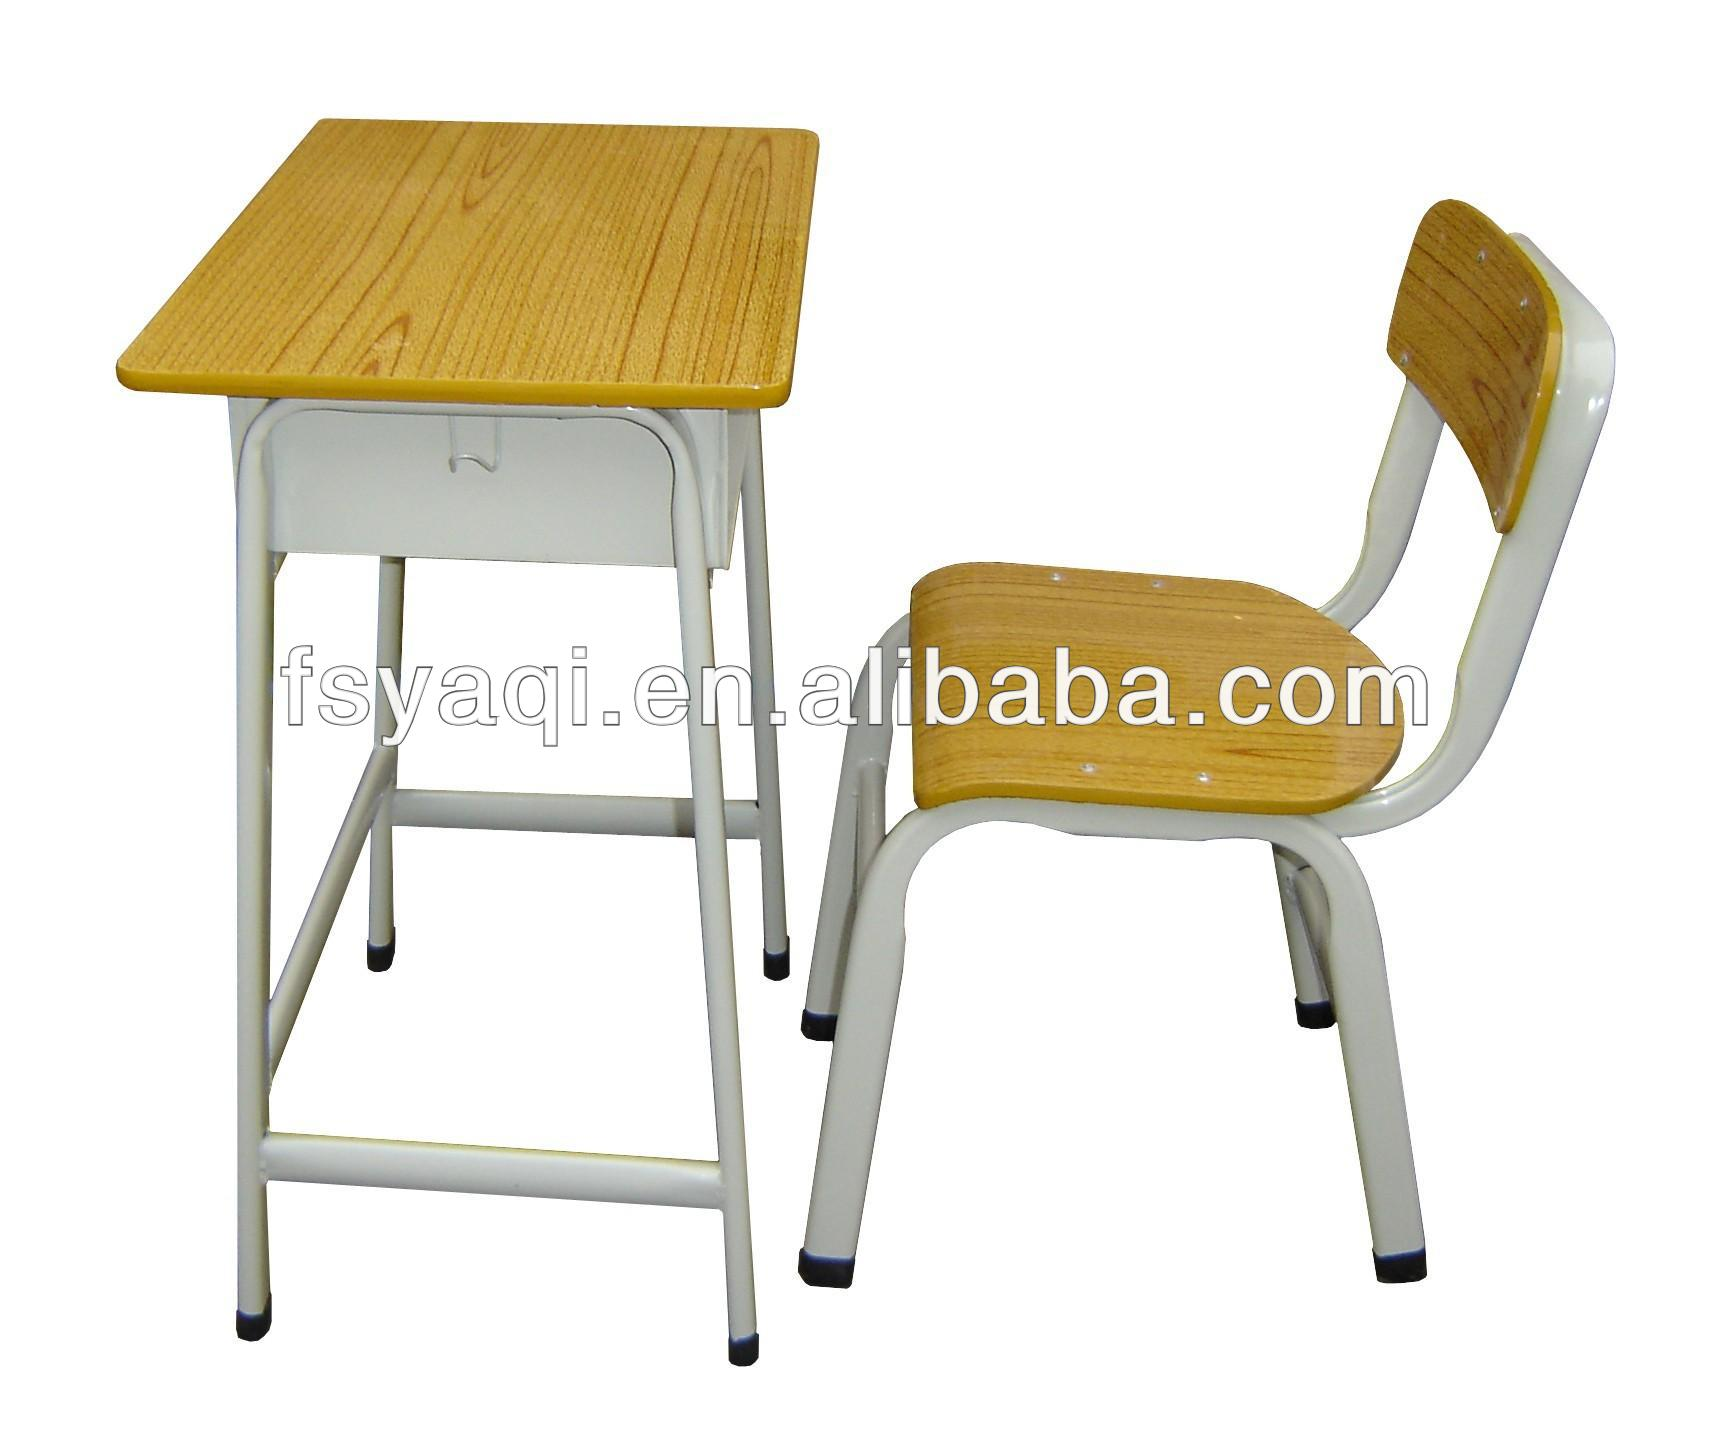 School Tables And Chairs School Tables And Chairs Suppliers and